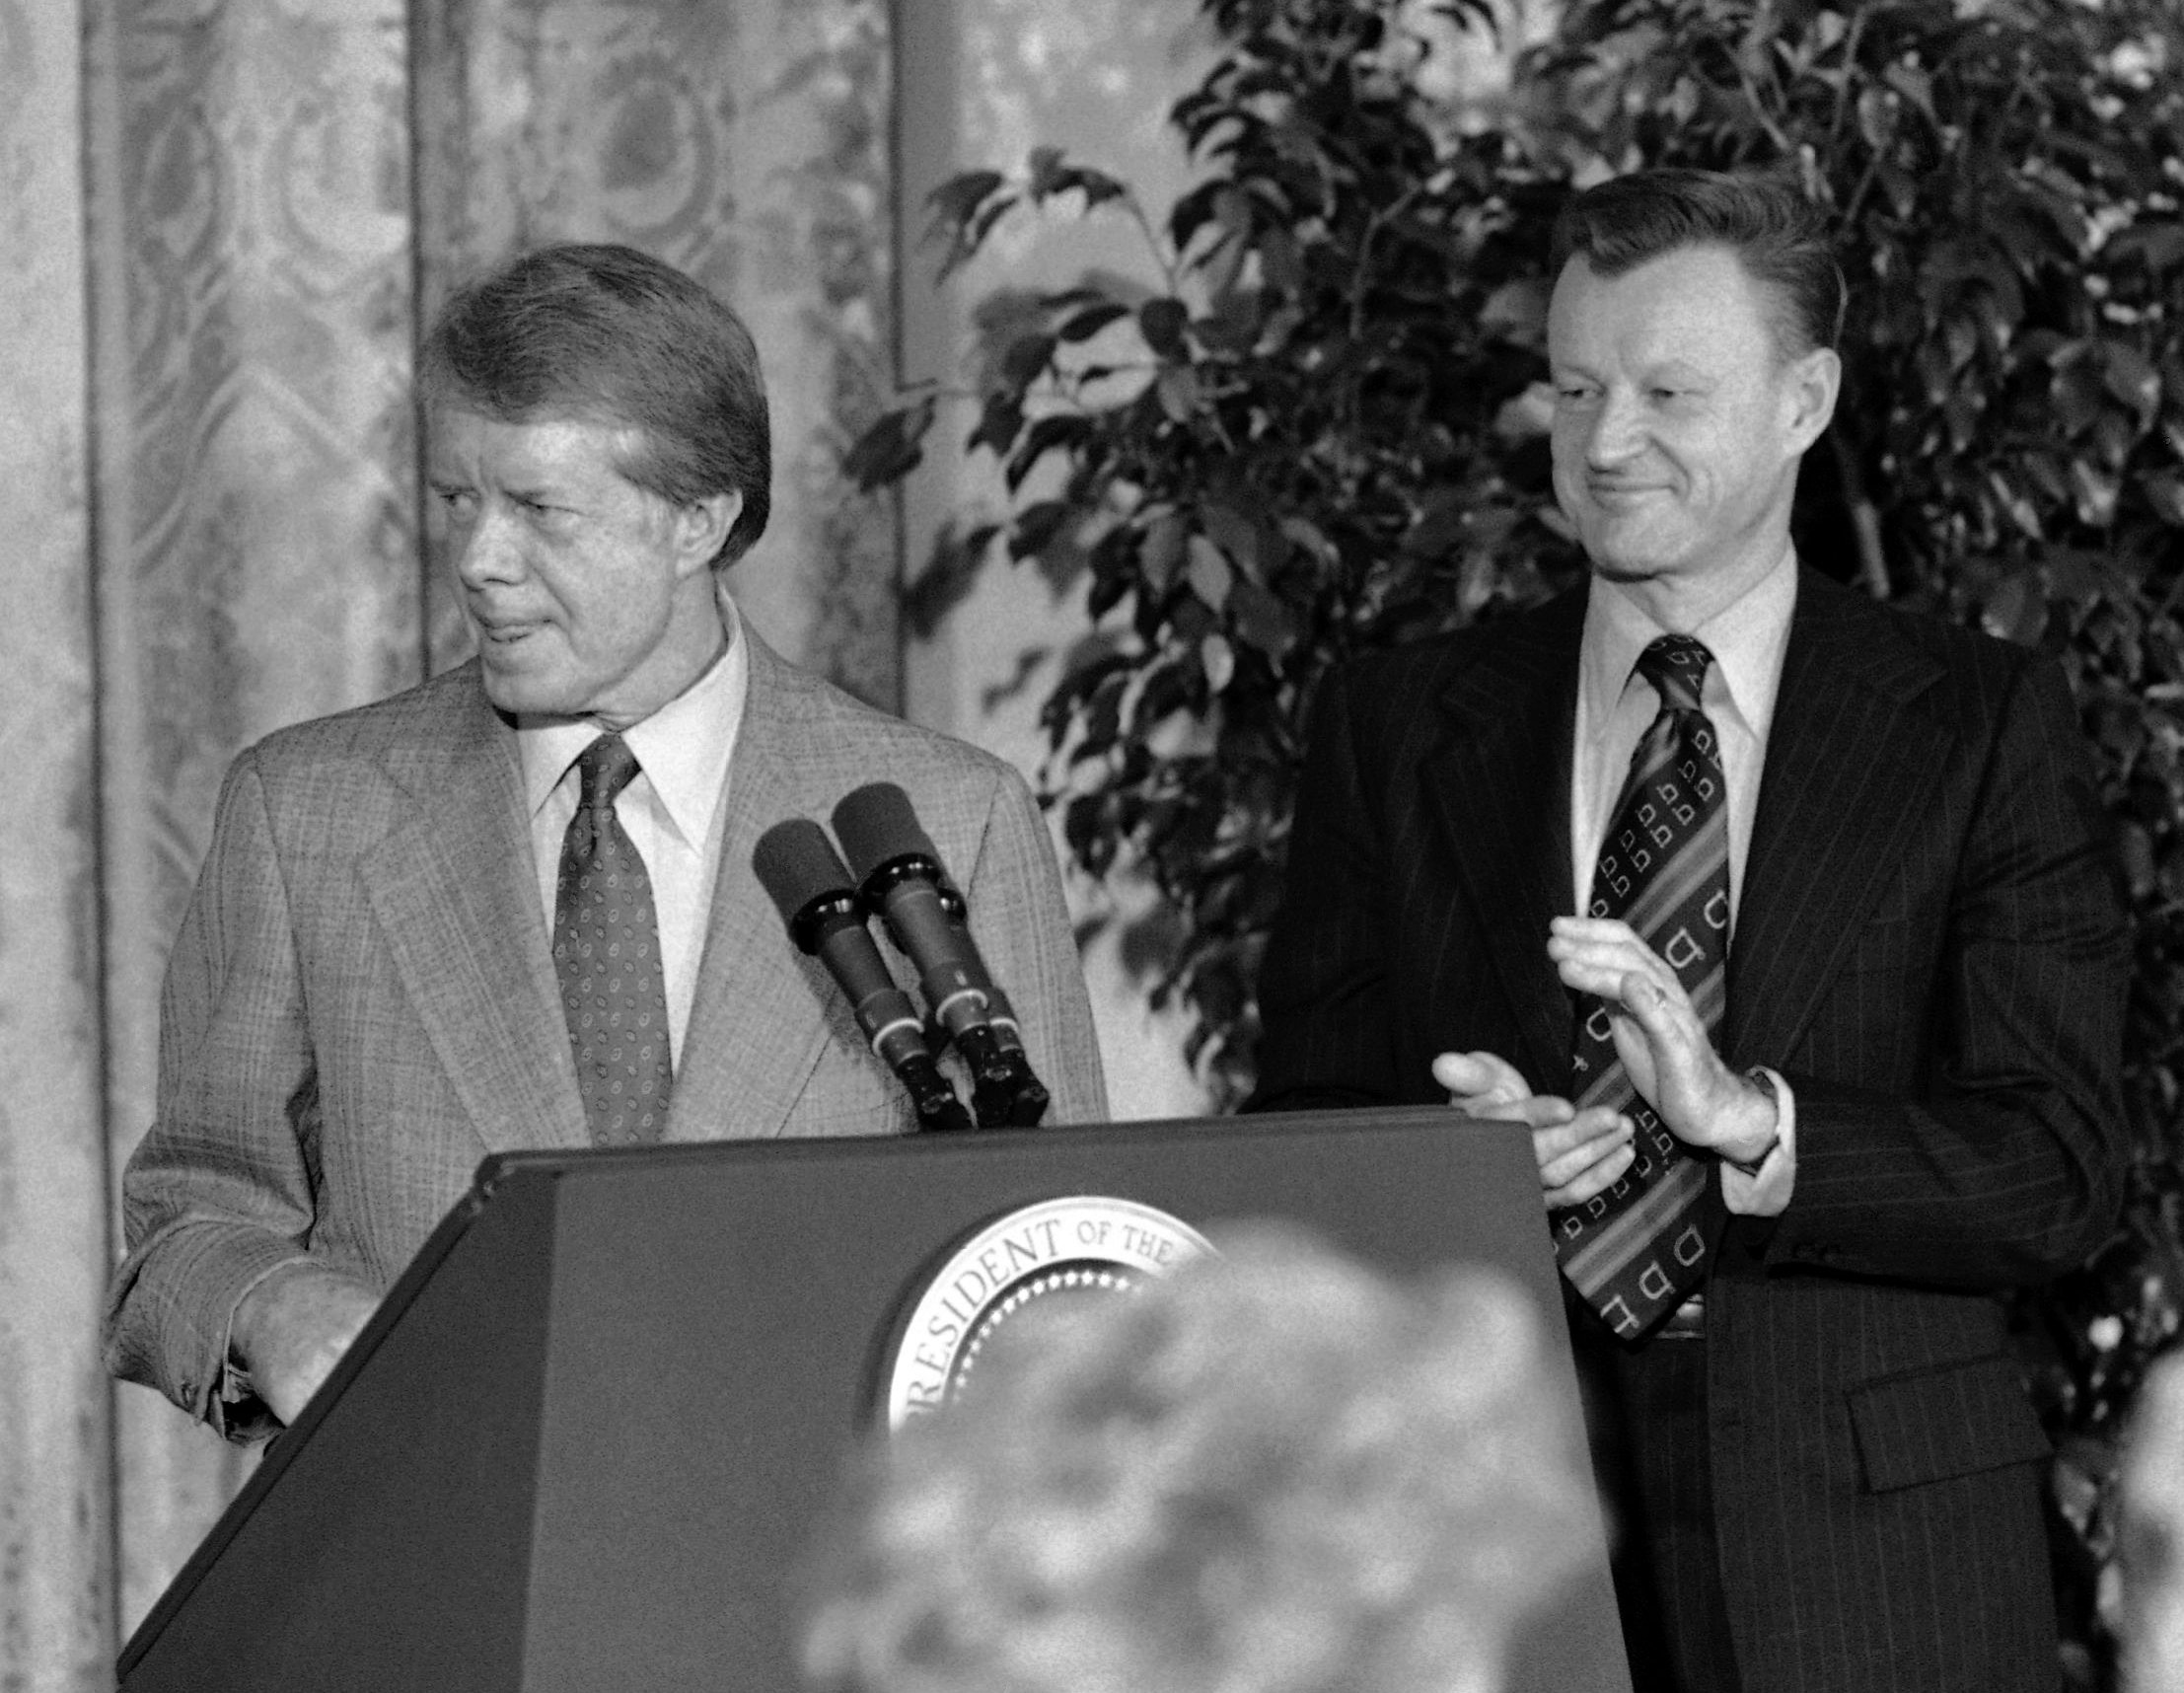 President Jimmy Carter, claiming success for his human rights policies, is applauded by aides Zbigniew Brzezinski and Anne Wexler in Washington, Dec. 6, 1978